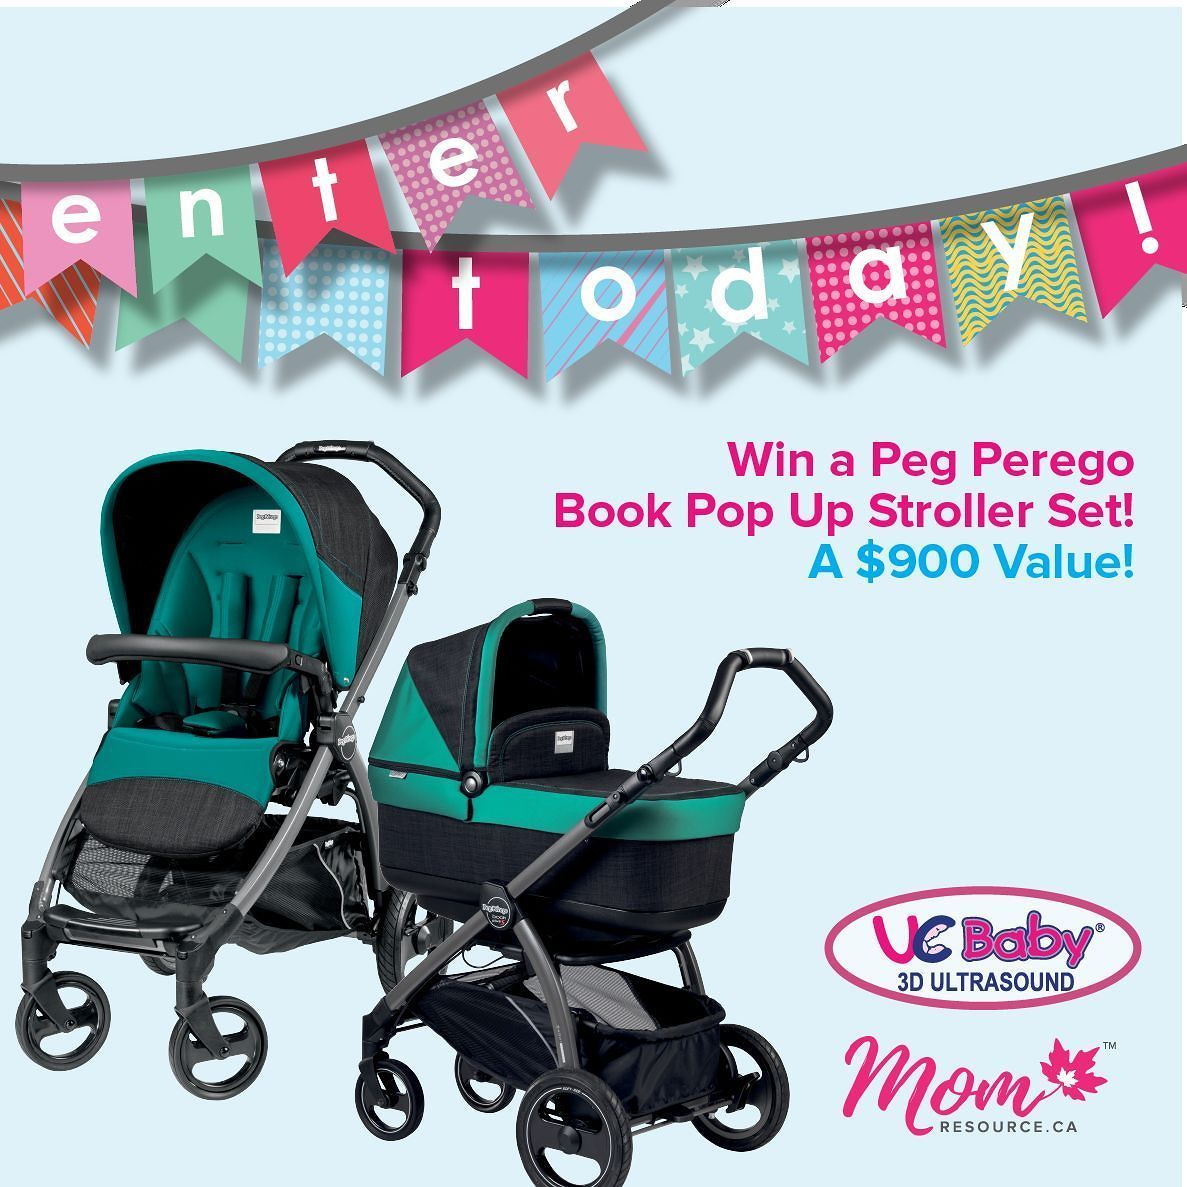 Giveaway alert! We've partnered with ucbaby.ca and we're